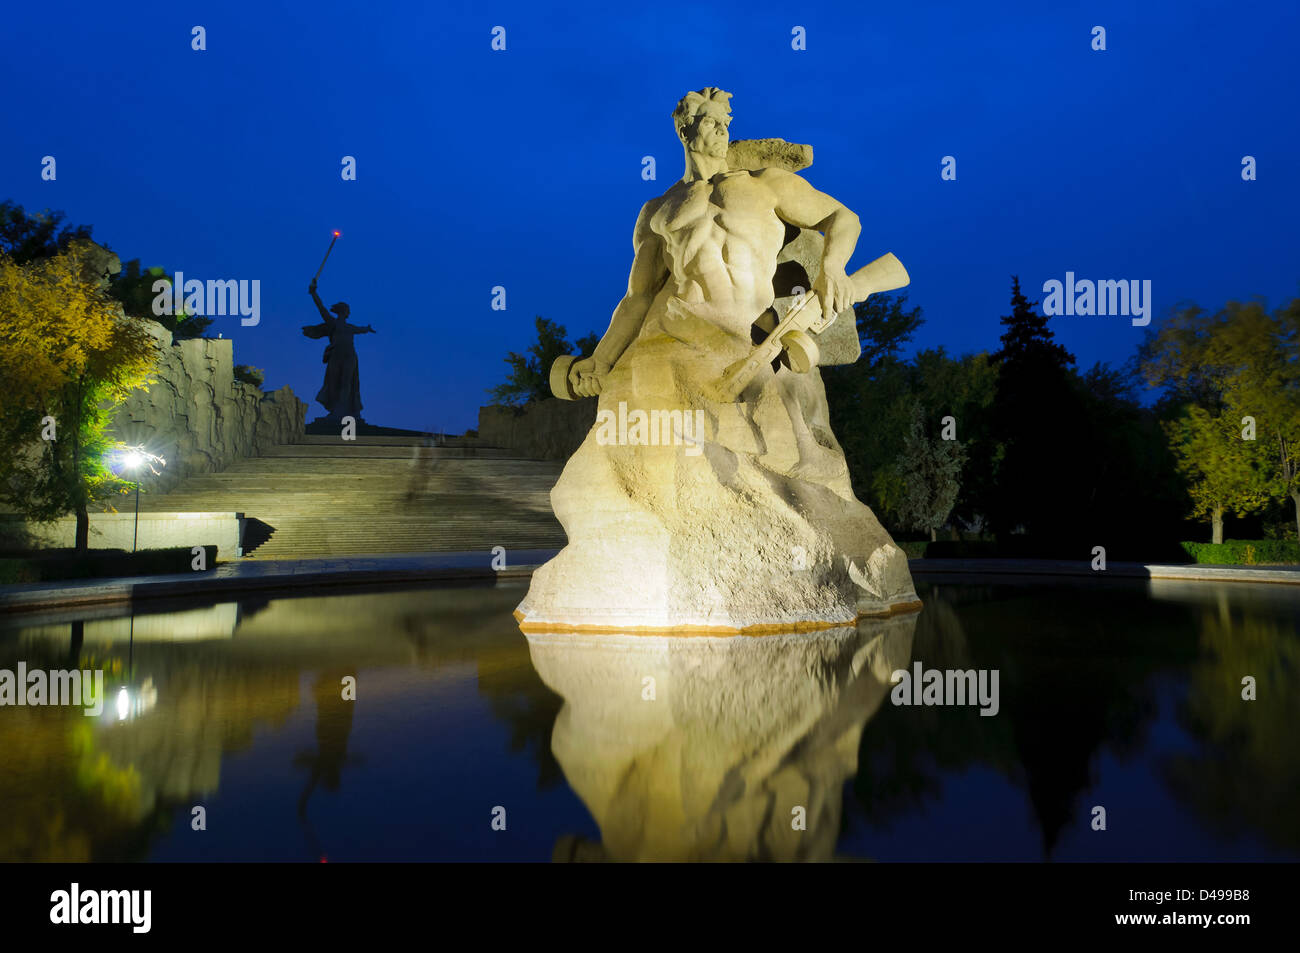 The Mamayev (Motherland Calls) monument in Volgograd, Russia, at night - Stock Image